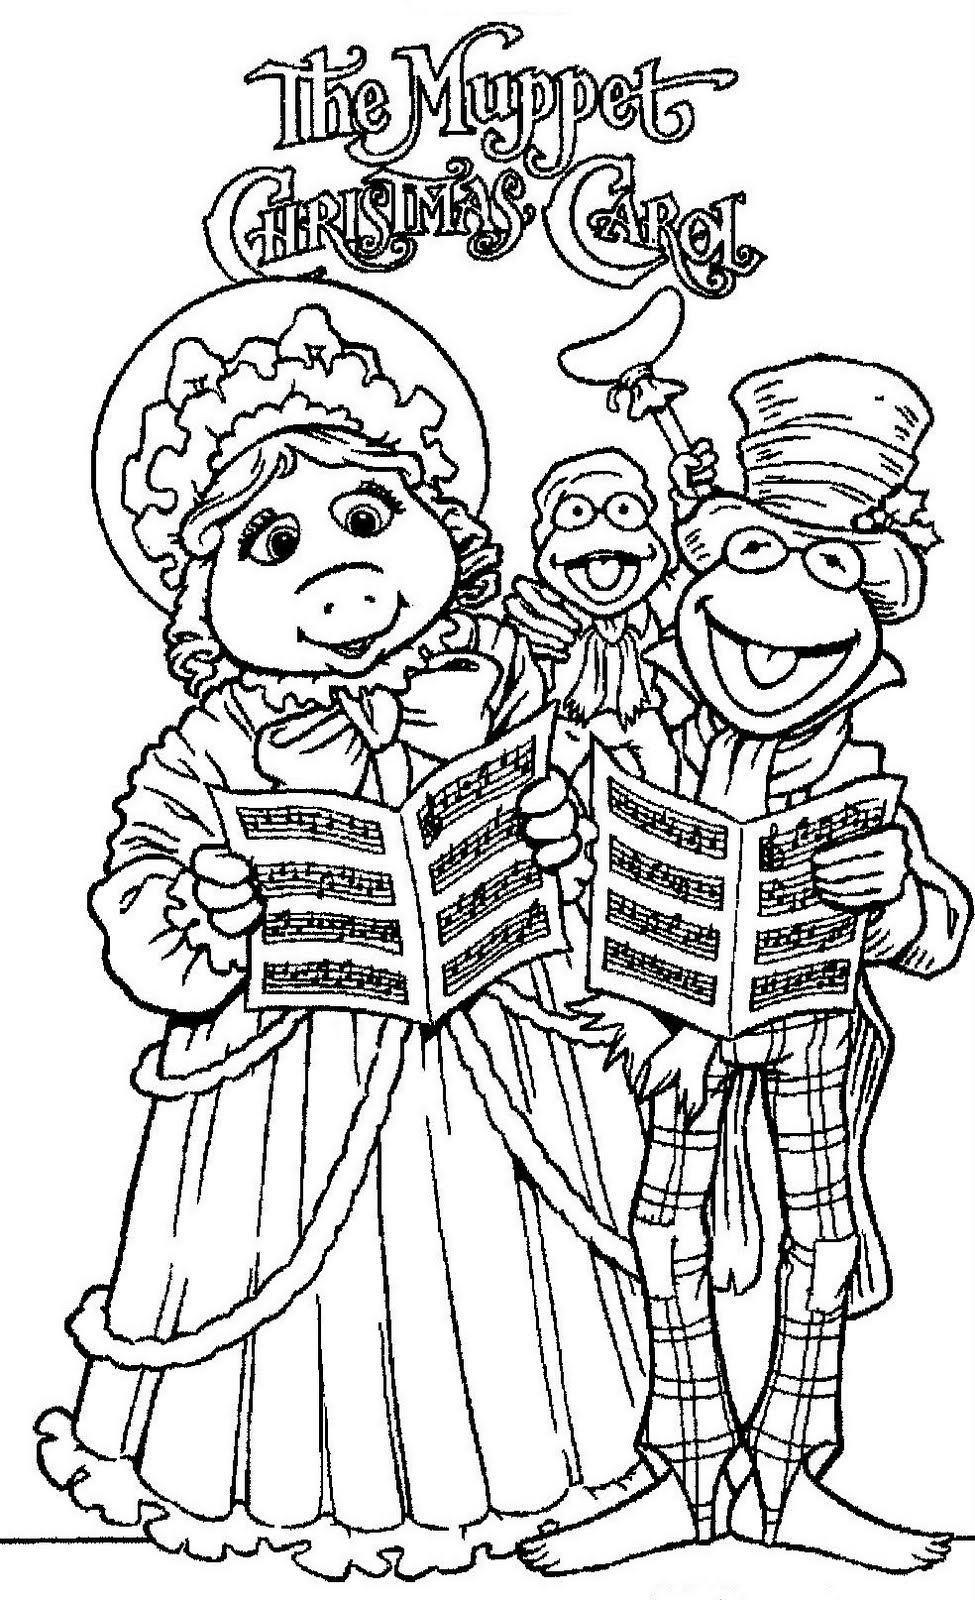 mostly paper dolls the muppet christmas carol movie coloring contest